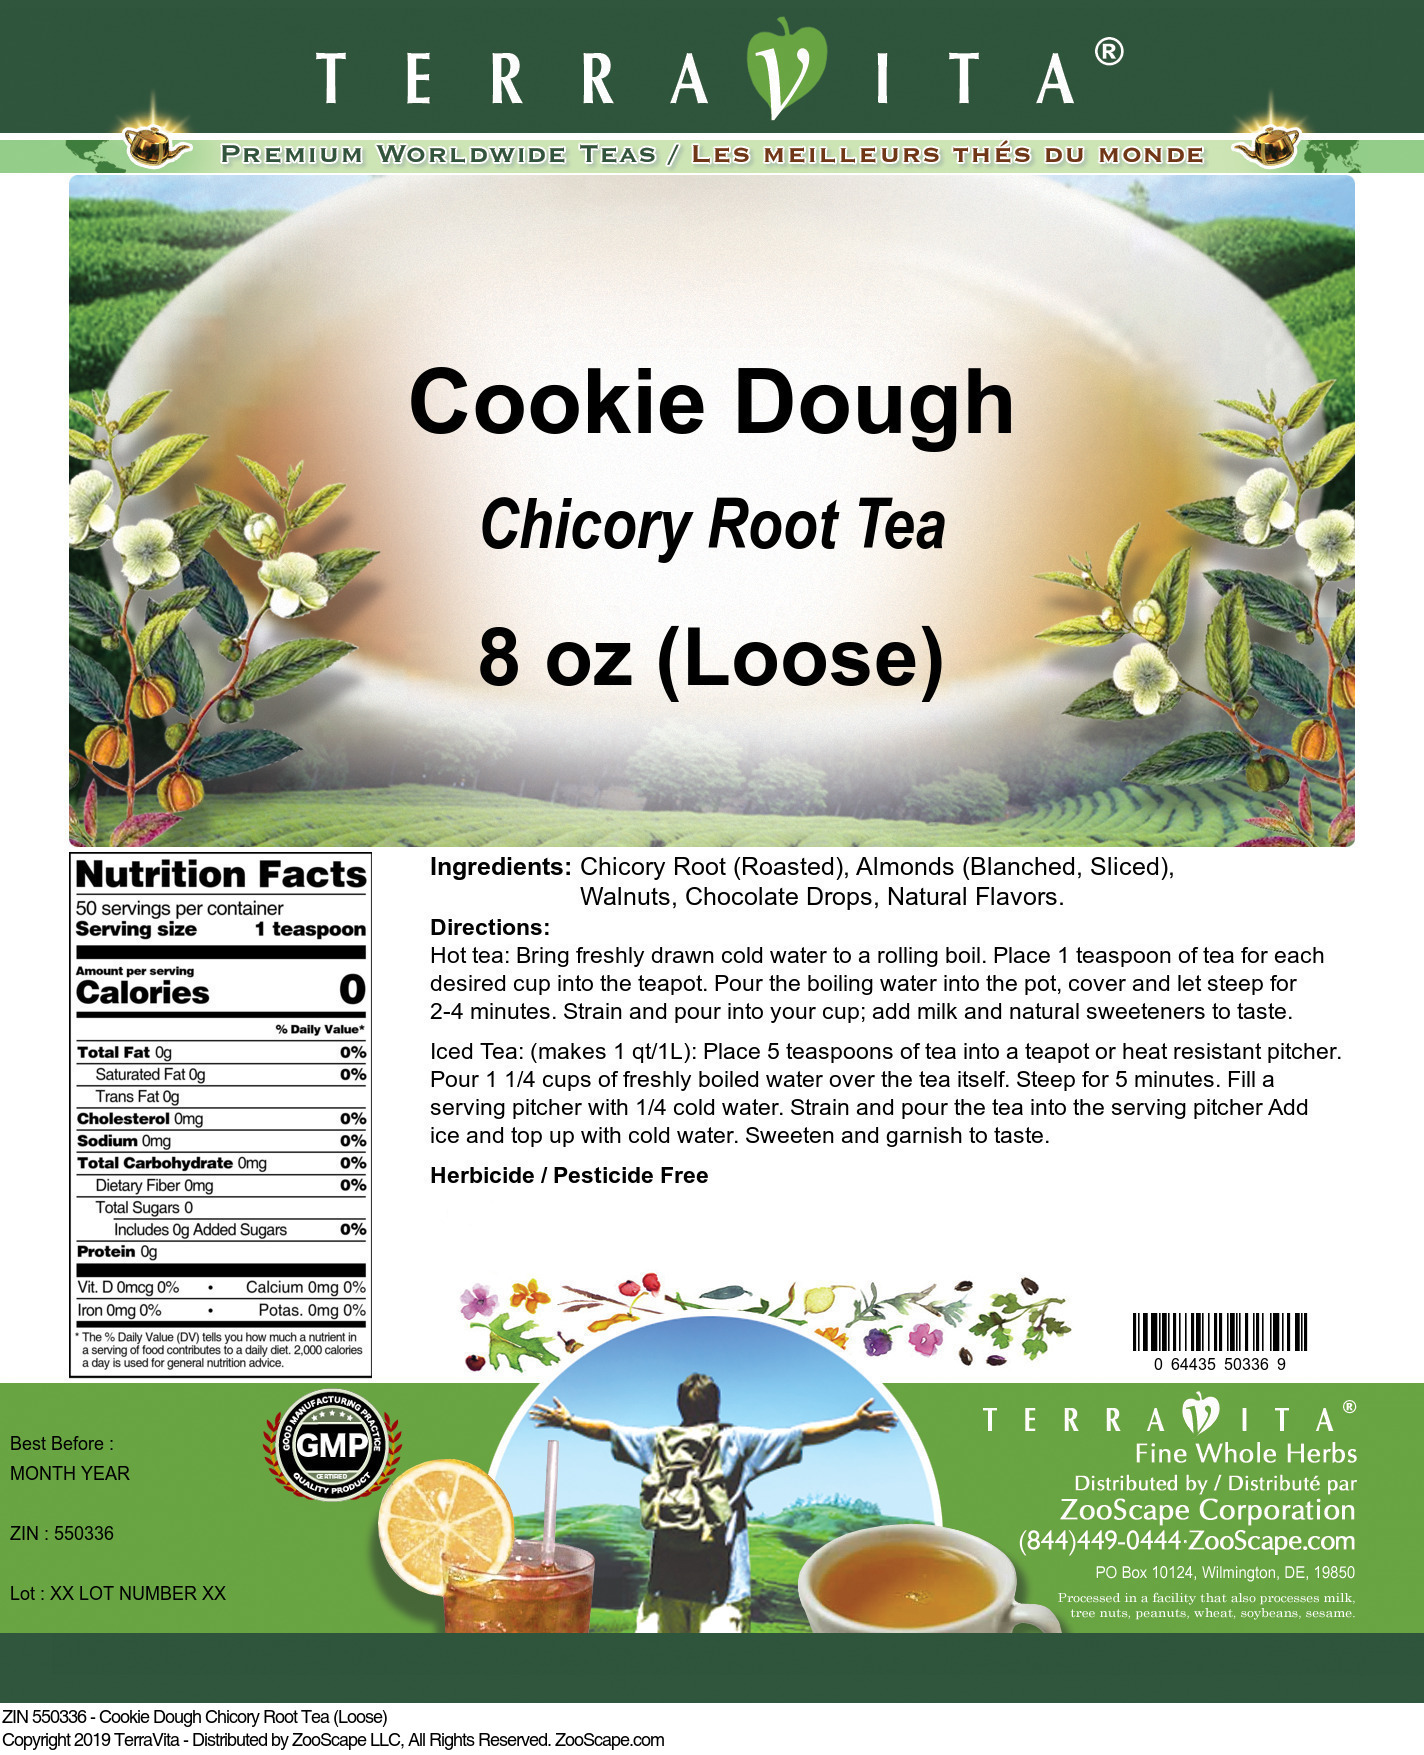 Cookie Dough Chicory Root Tea (Loose)